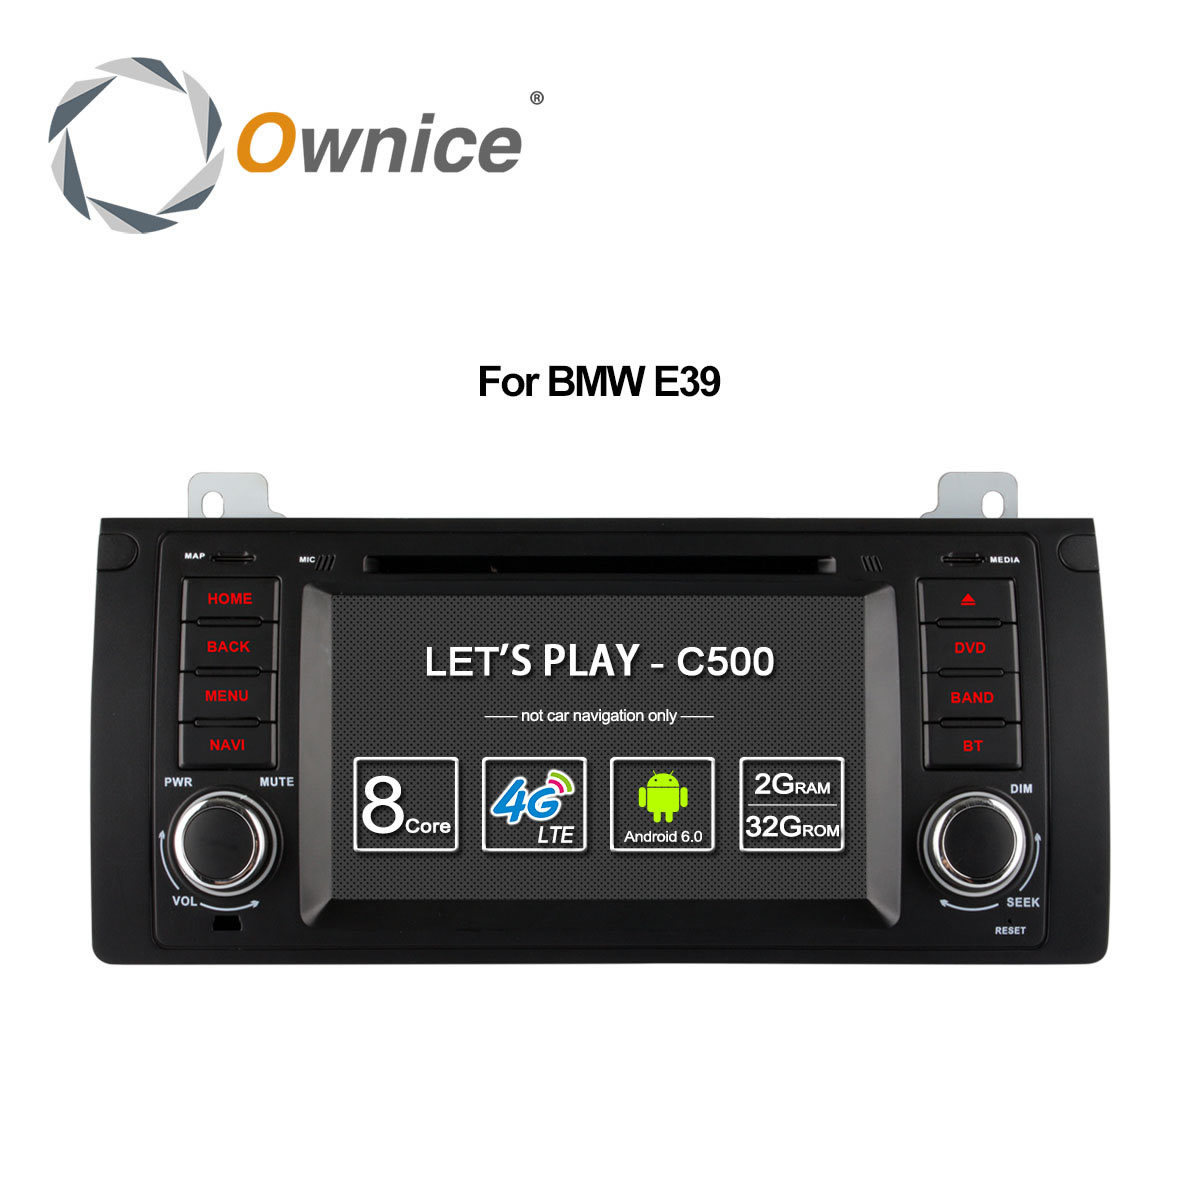 Ownice 4G SIM LTE Android 6.0 Octa Core 32G ROM In Dash Car DVD Player For BMW E39 X5 M5 E38 E53 With Wifi GPS Navi Radio FM ownice c500 4g sim lte octa 8 core android 6 0 for kia ceed 2013 2015 car dvd player gps navi radio wifi 4g bt 2gb ram 32g rom